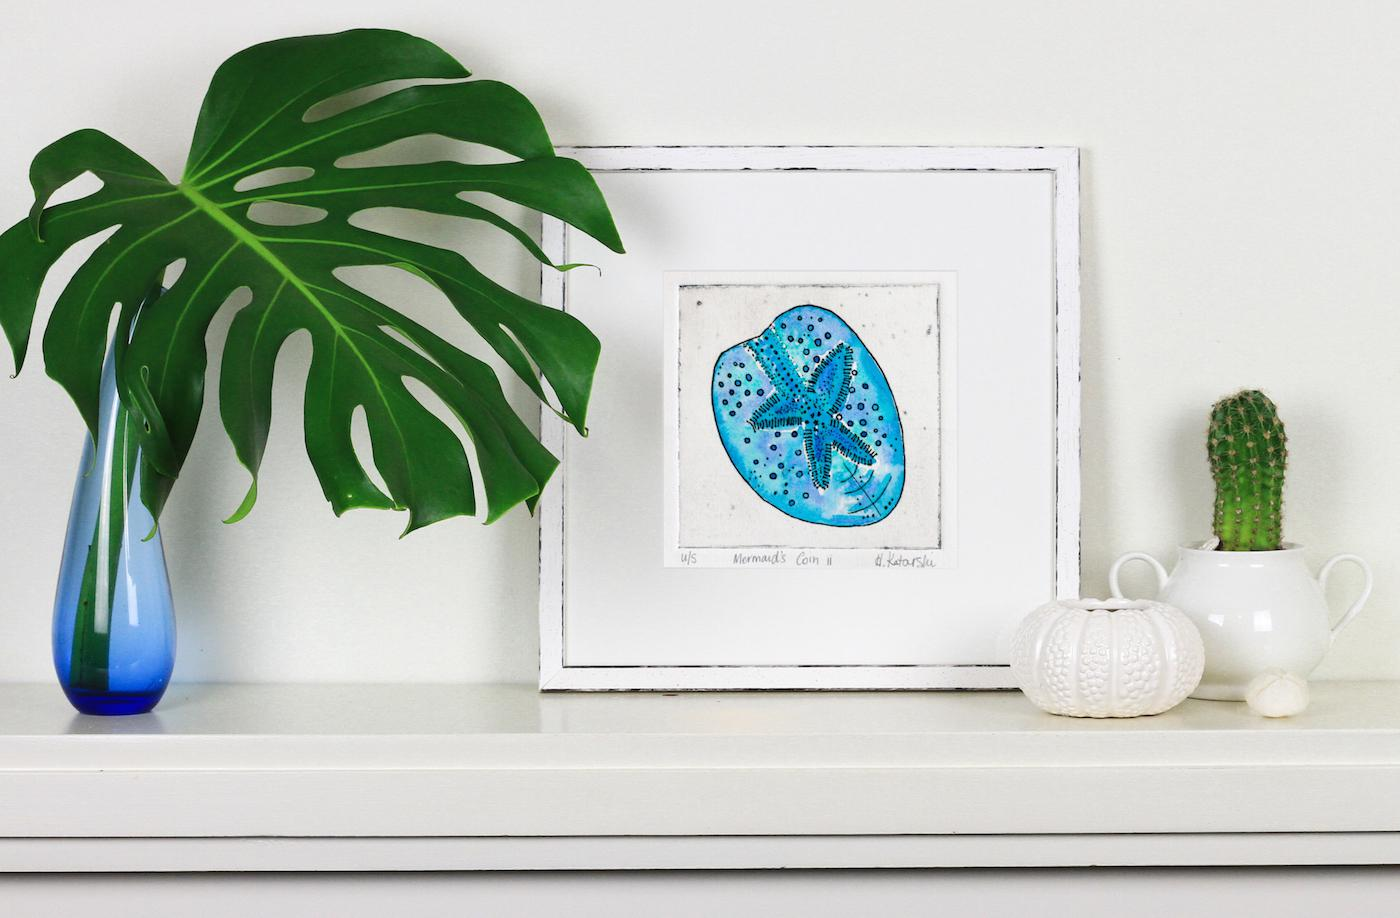 Mermaid's Coin ii - Limited edition drypoint & watercolour original print